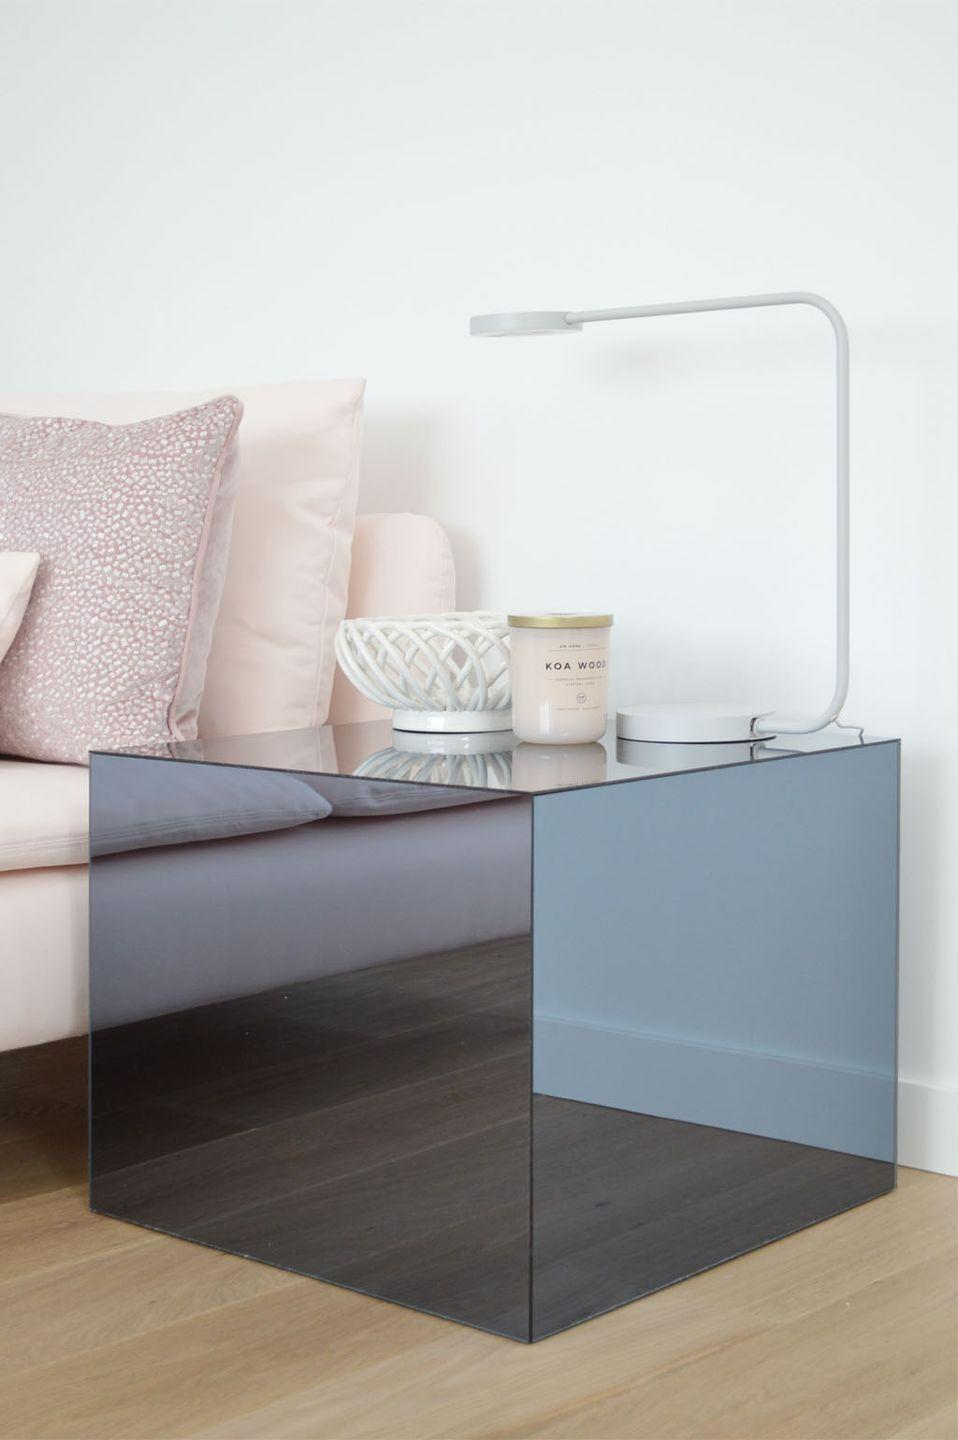 """<p>This plexiglass covered table by Kristina of <a href=""""http://www.ichdesigner.com/2018/03/14/ikea-lack-hack/"""" rel=""""nofollow noopener"""" target=""""_blank"""" data-ylk=""""slk:Ich Designer"""" class=""""link rapid-noclick-resp"""">Ich Designer</a> is beyond chic.</p><p>See more at <a href=""""http://www.ichdesigner.com/2018/03/14/ikea-lack-hack/"""" rel=""""nofollow noopener"""" target=""""_blank"""" data-ylk=""""slk:Ich Designer"""" class=""""link rapid-noclick-resp"""">Ich Designer</a>.</p>"""